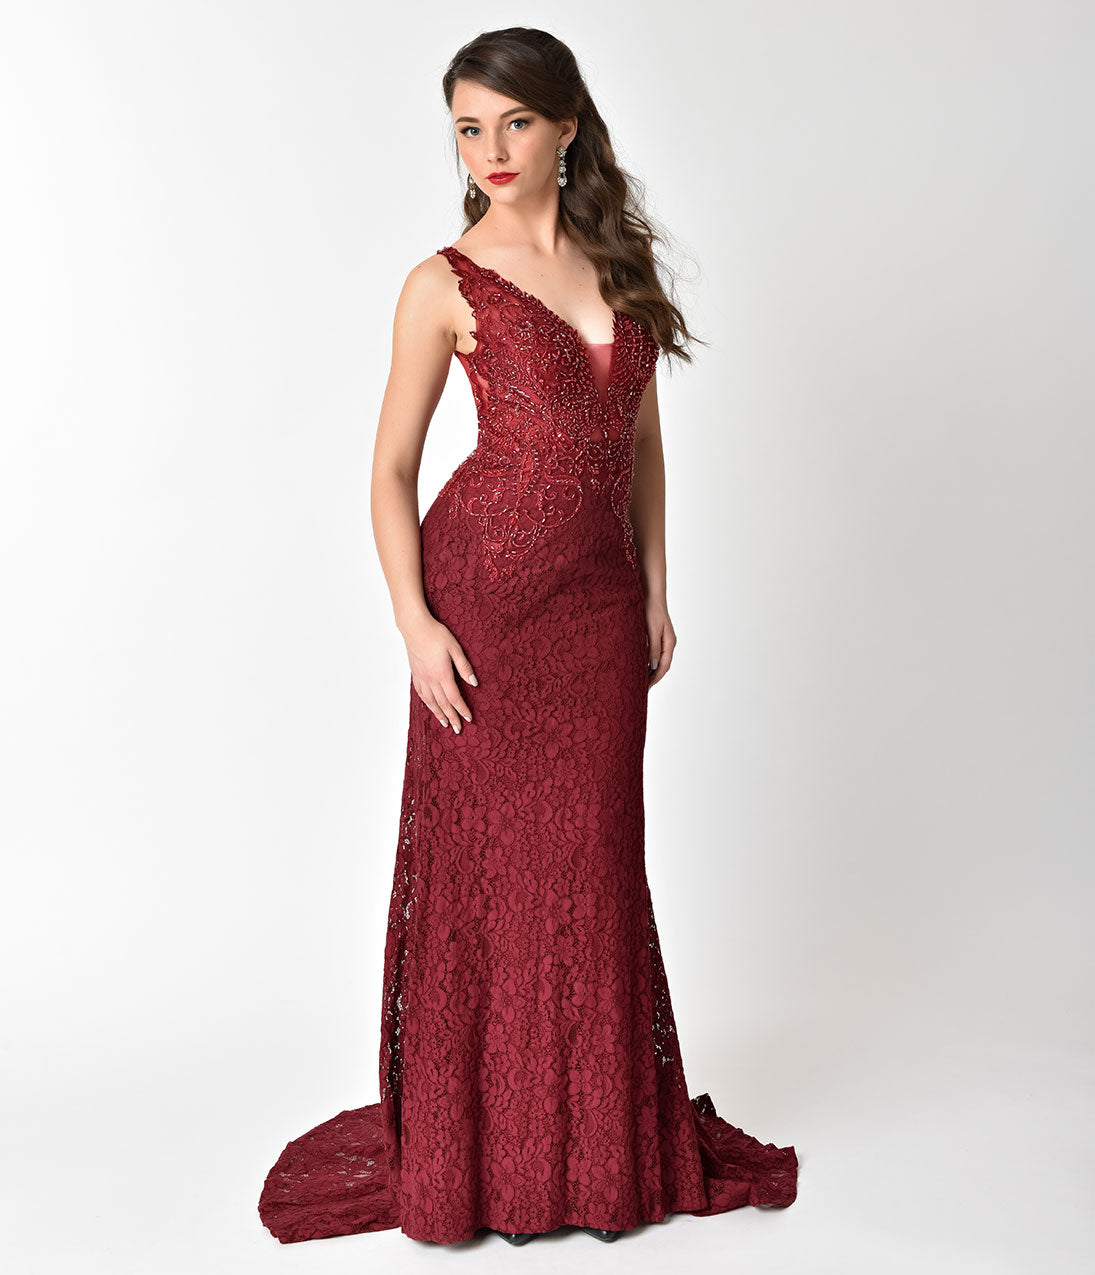 Valentines Day Dresses, Outfits, Lingerie | Red Dresses Burgundy Red Lace Sheer Illusion Beaded Long Dress $310.00 AT vintagedancer.com